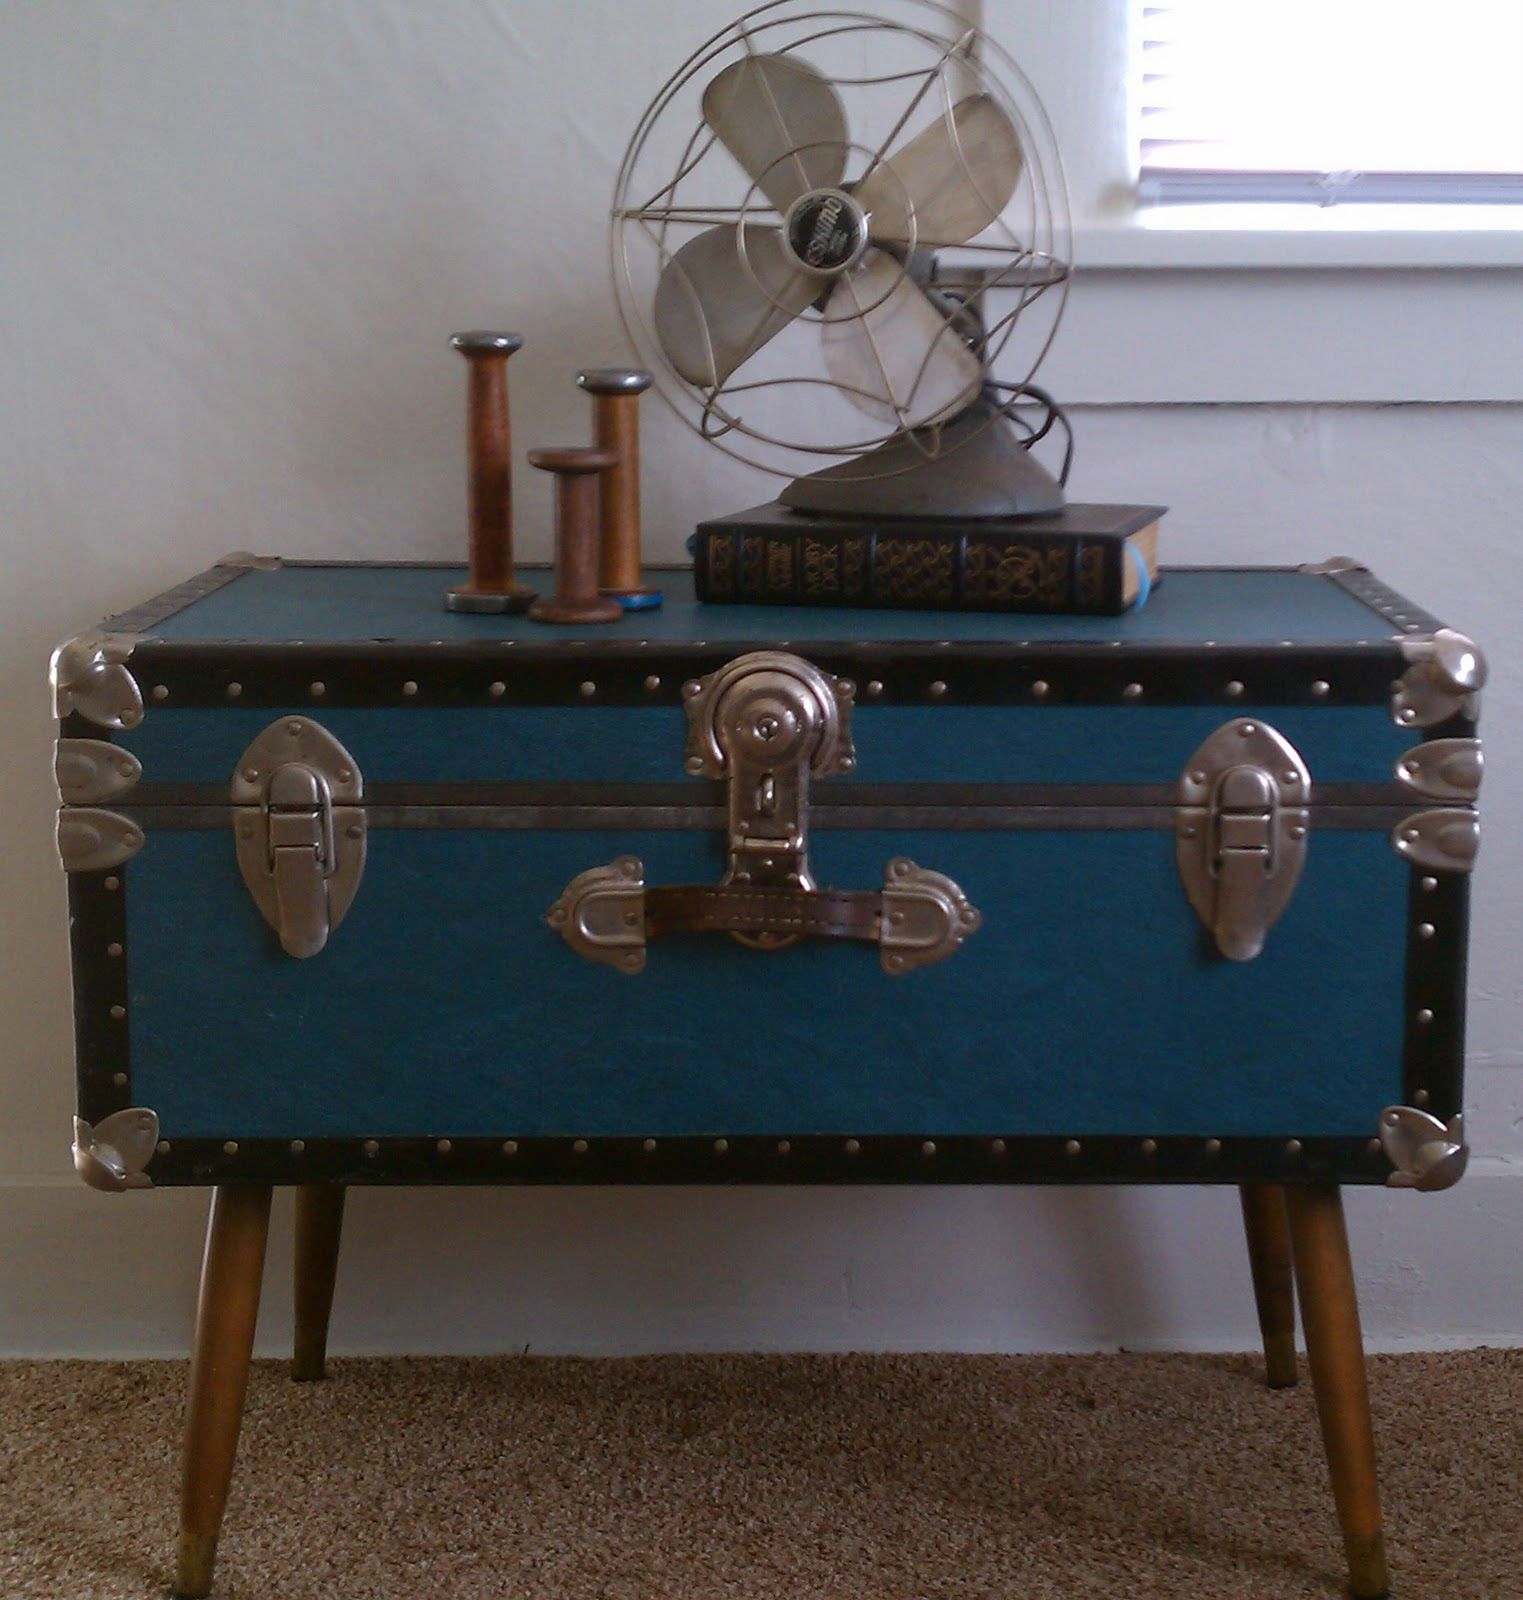 Steamer Trunk Coffee Table Ideas: Steamer Trunk Turned Coffe Table. I Would Like To Do This